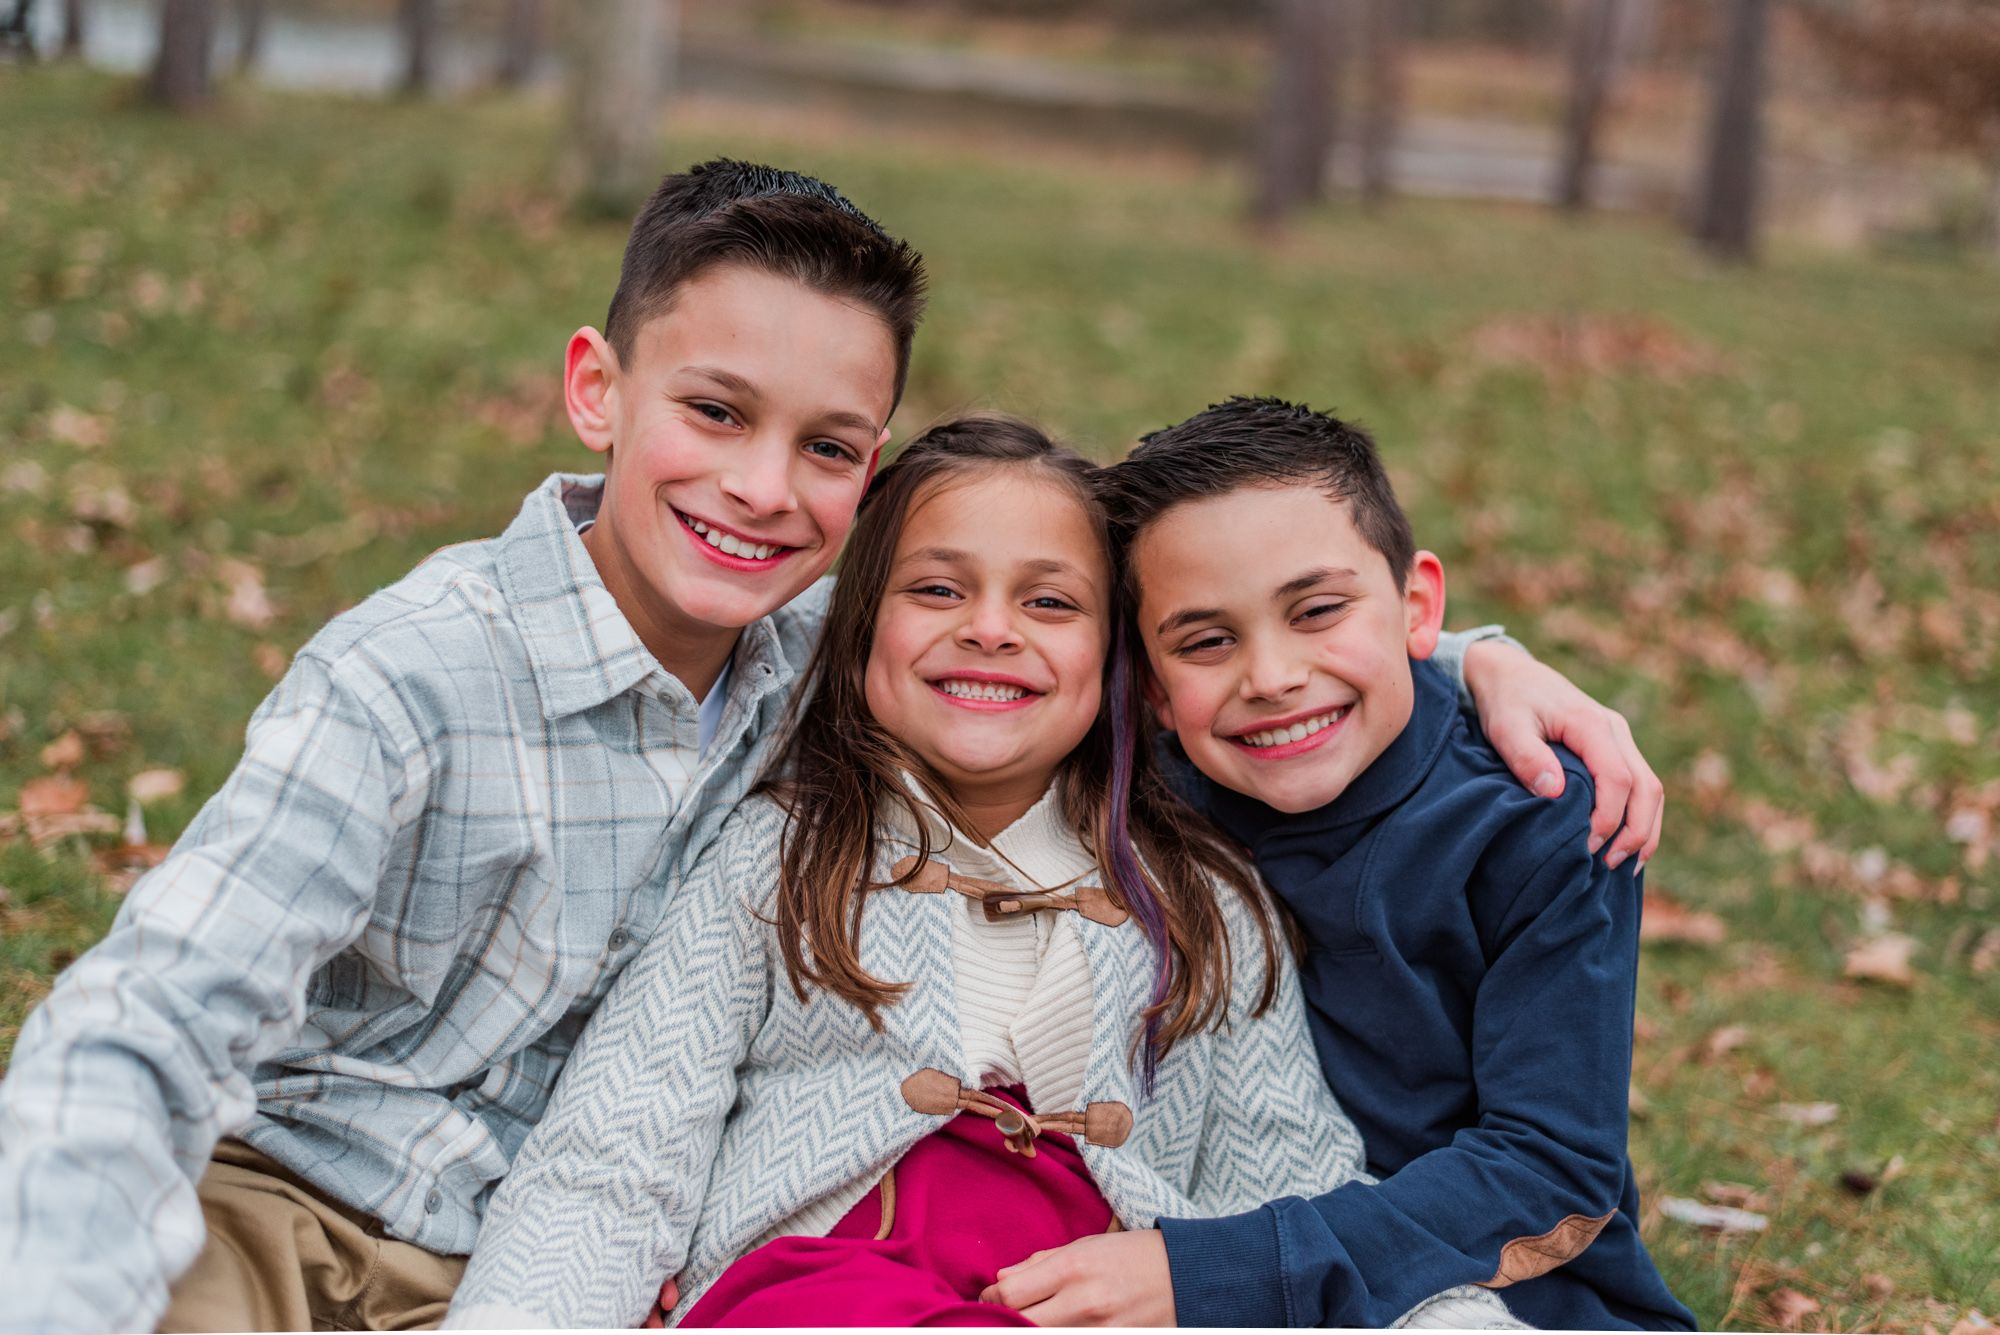 Family session with siblings at North Park, Pittsburgh, Pennsylvania